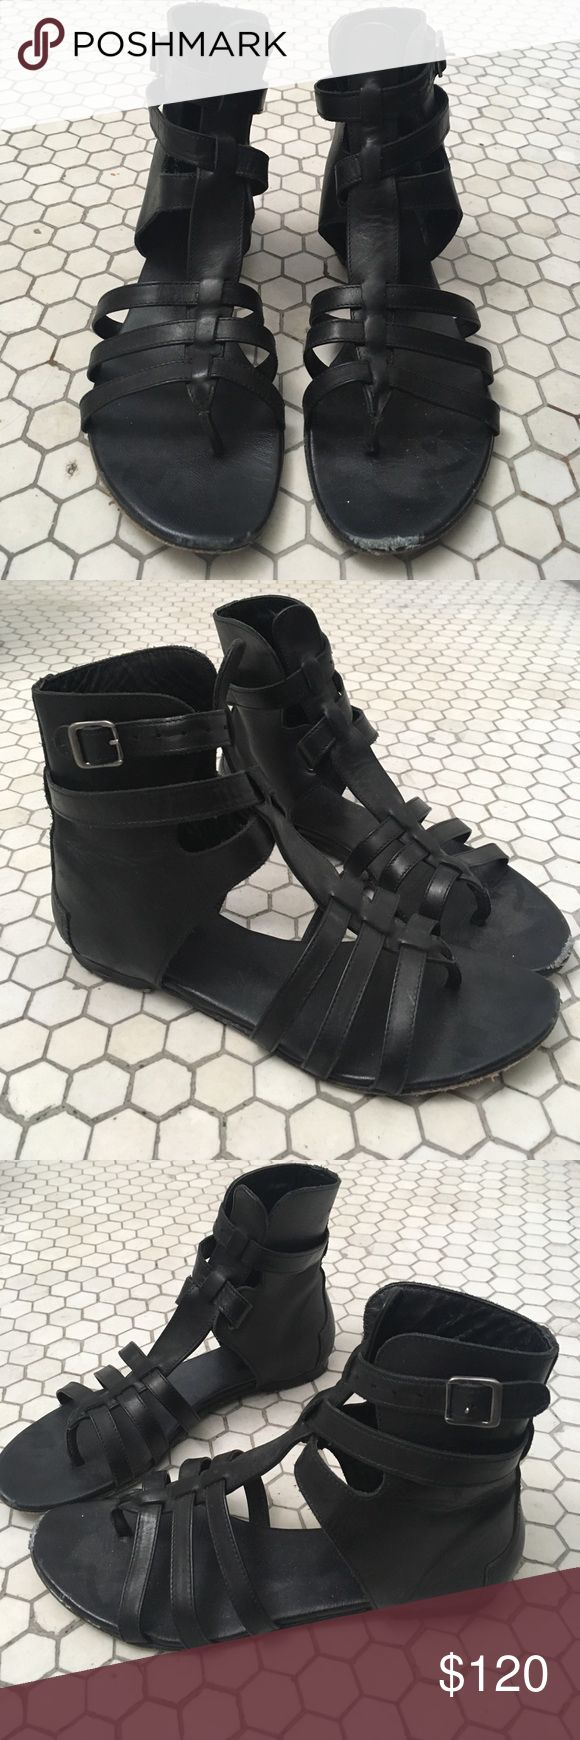 AllSaints Alomar Gladiator Black Sandals Sold out and very hard to find AllSaints Alomar Gladiator sandals in size 37, as seen on Demi Lovato (exact). The AllSaints Alomar Sandal is crafted in soft Italian nappa leather, with multiple straps framing the foot. Gladiator style. Adjustable ankle strap with single buckle fastening. Visible scuffs on front, easily fixable. AllSaints Shoes Sandals